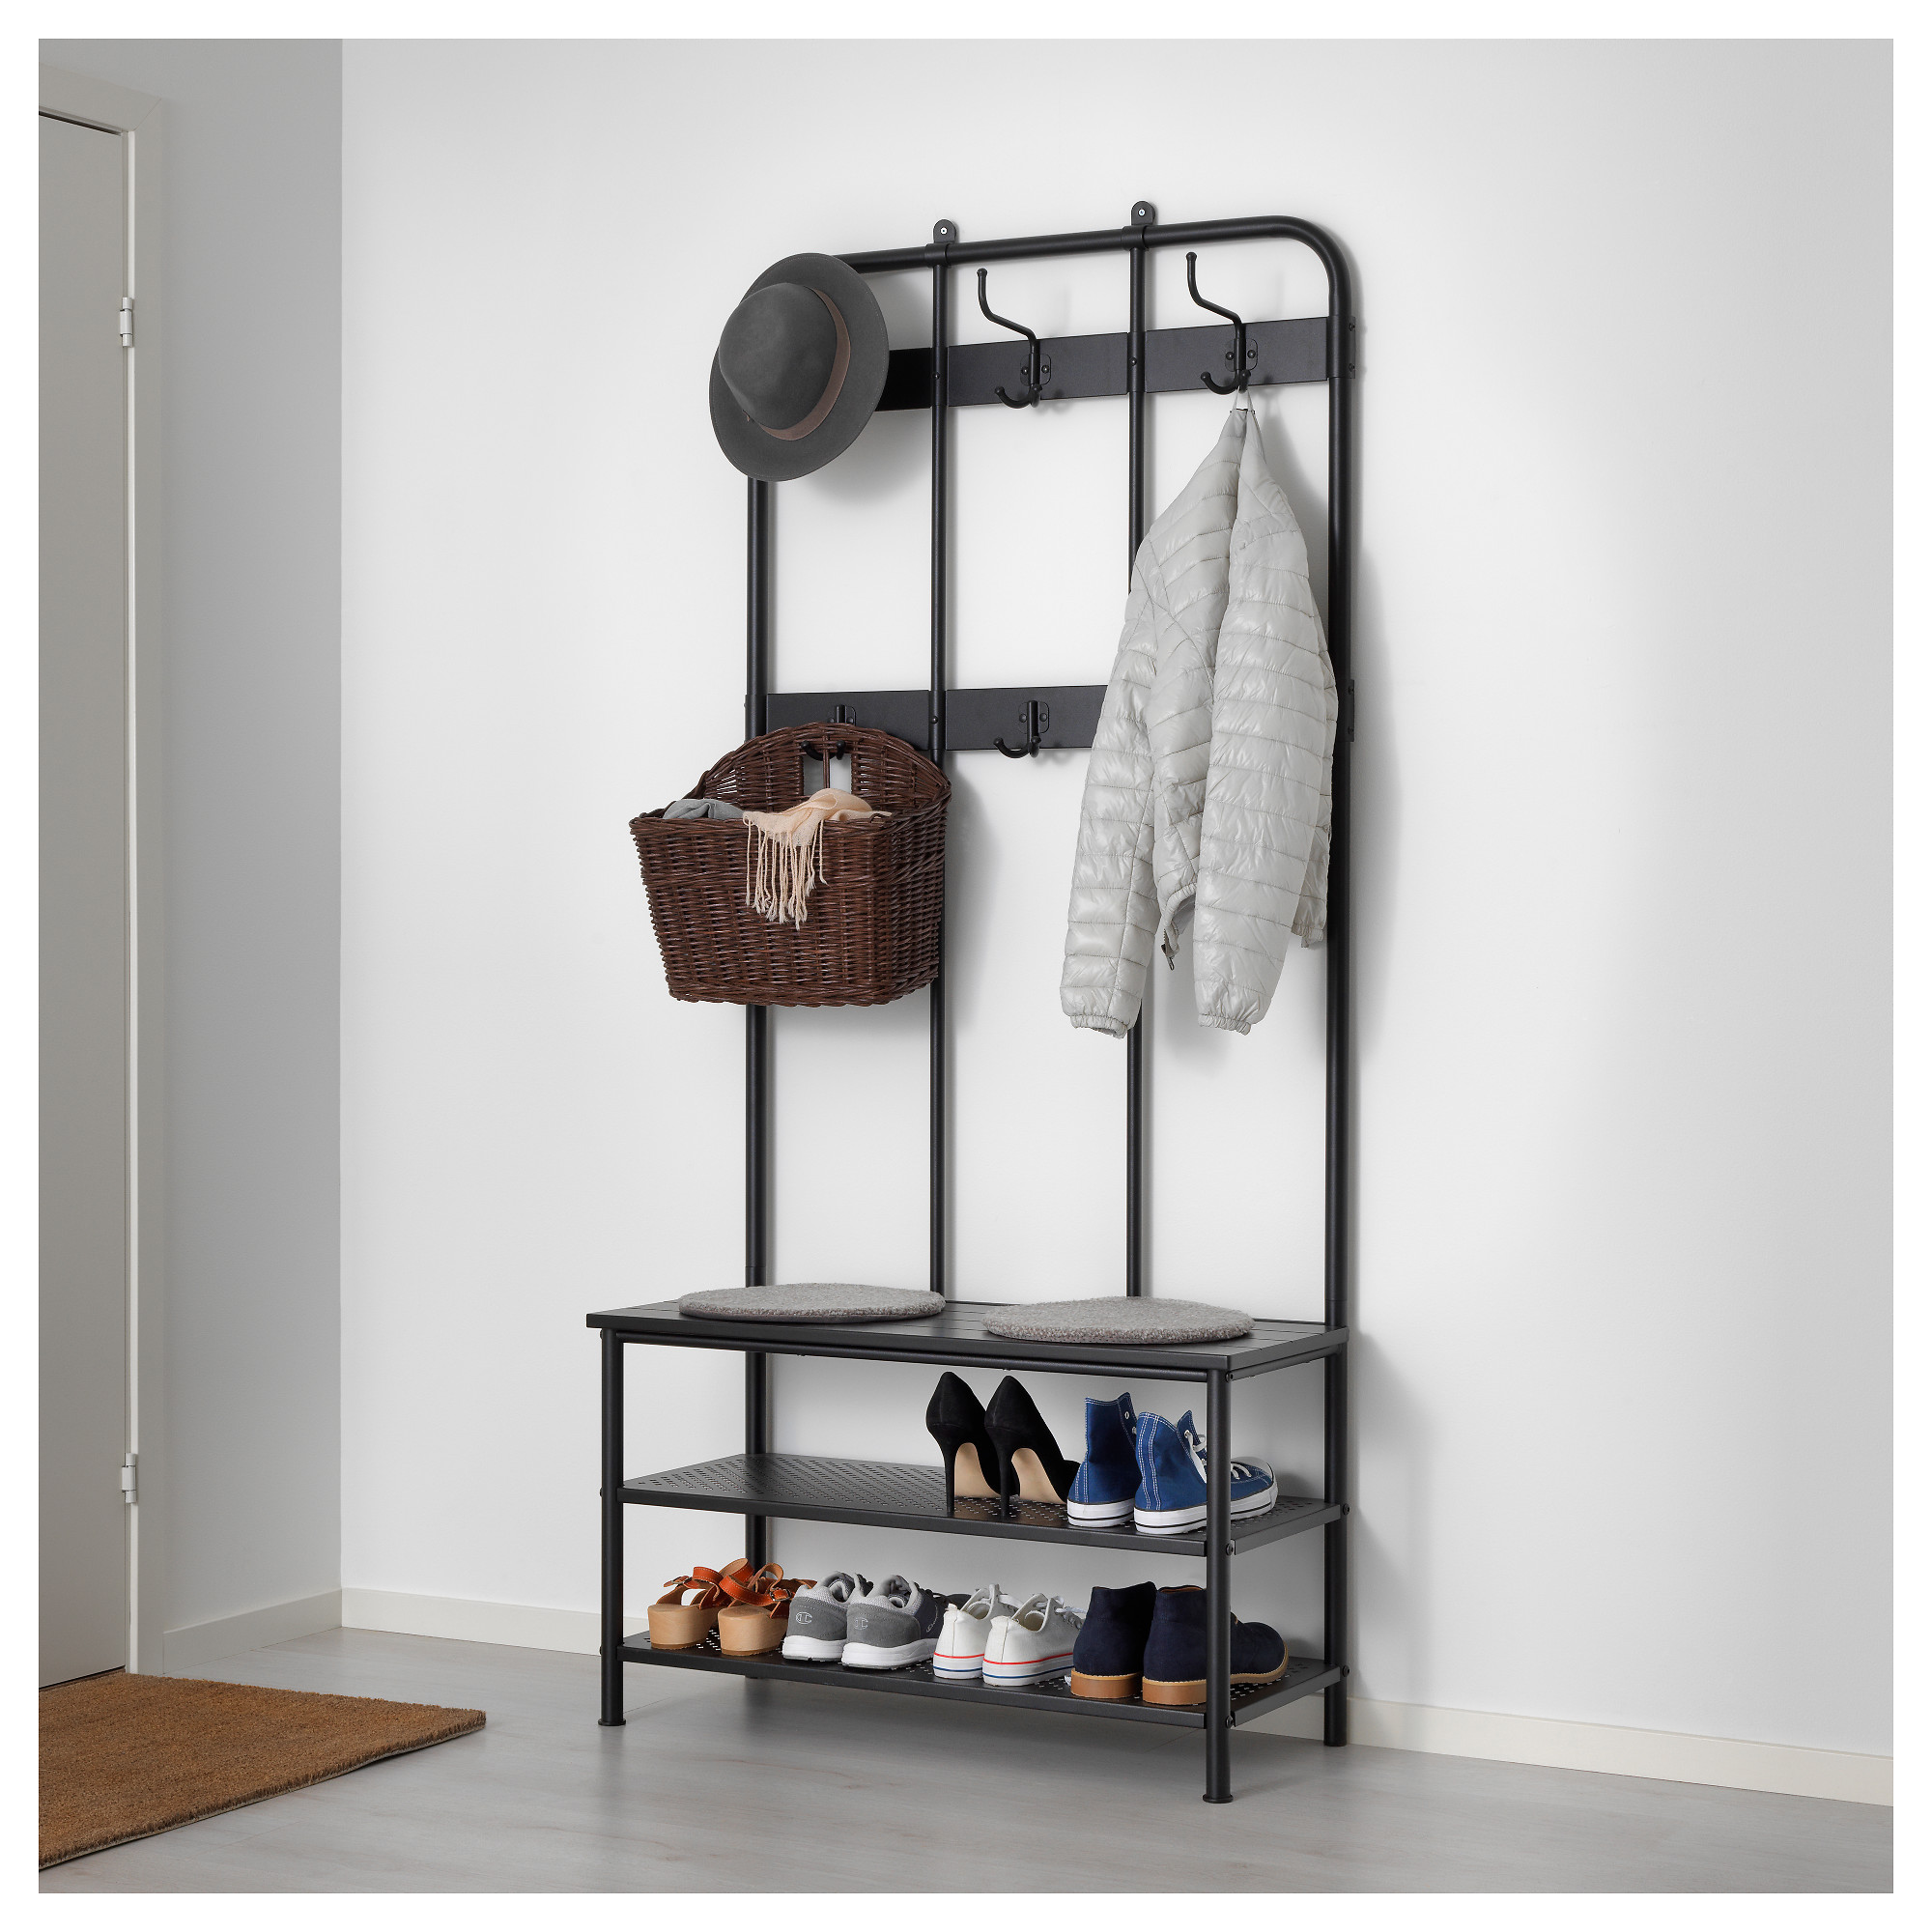 Coat Rack With Shoe Storage.Ikea Lithuania Shop For Furniture Lighting Home